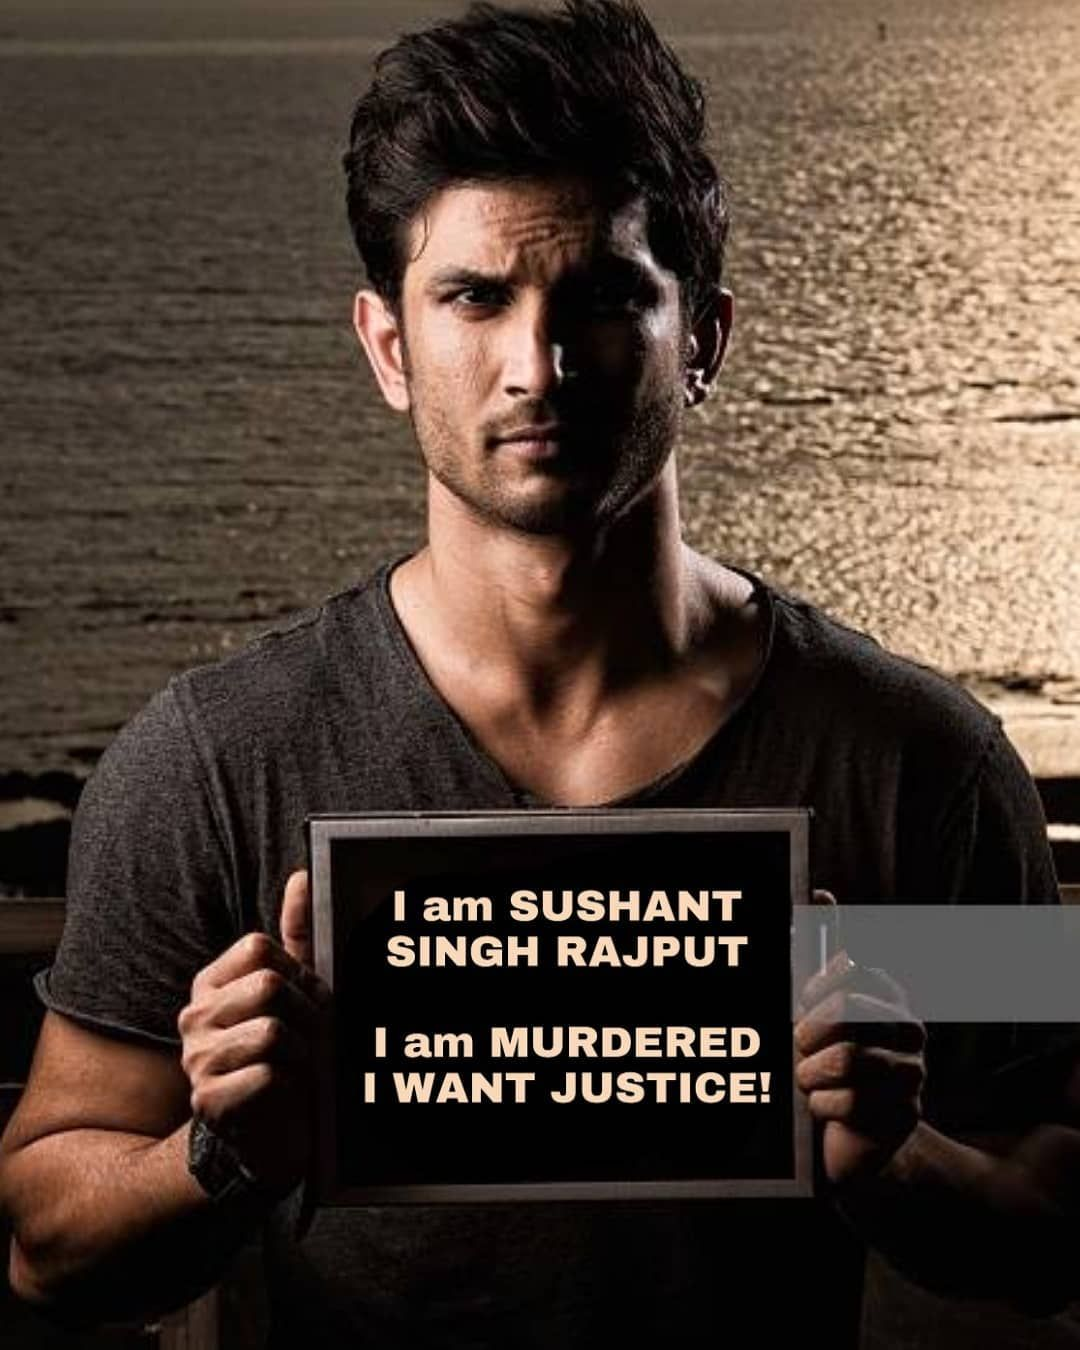 19 6k Likes 264 Comments Justice For Sushant Love Sushant 21 On Instagram Justiceforsushant Sushant Singh Very Funny Texts Really Funny Memes